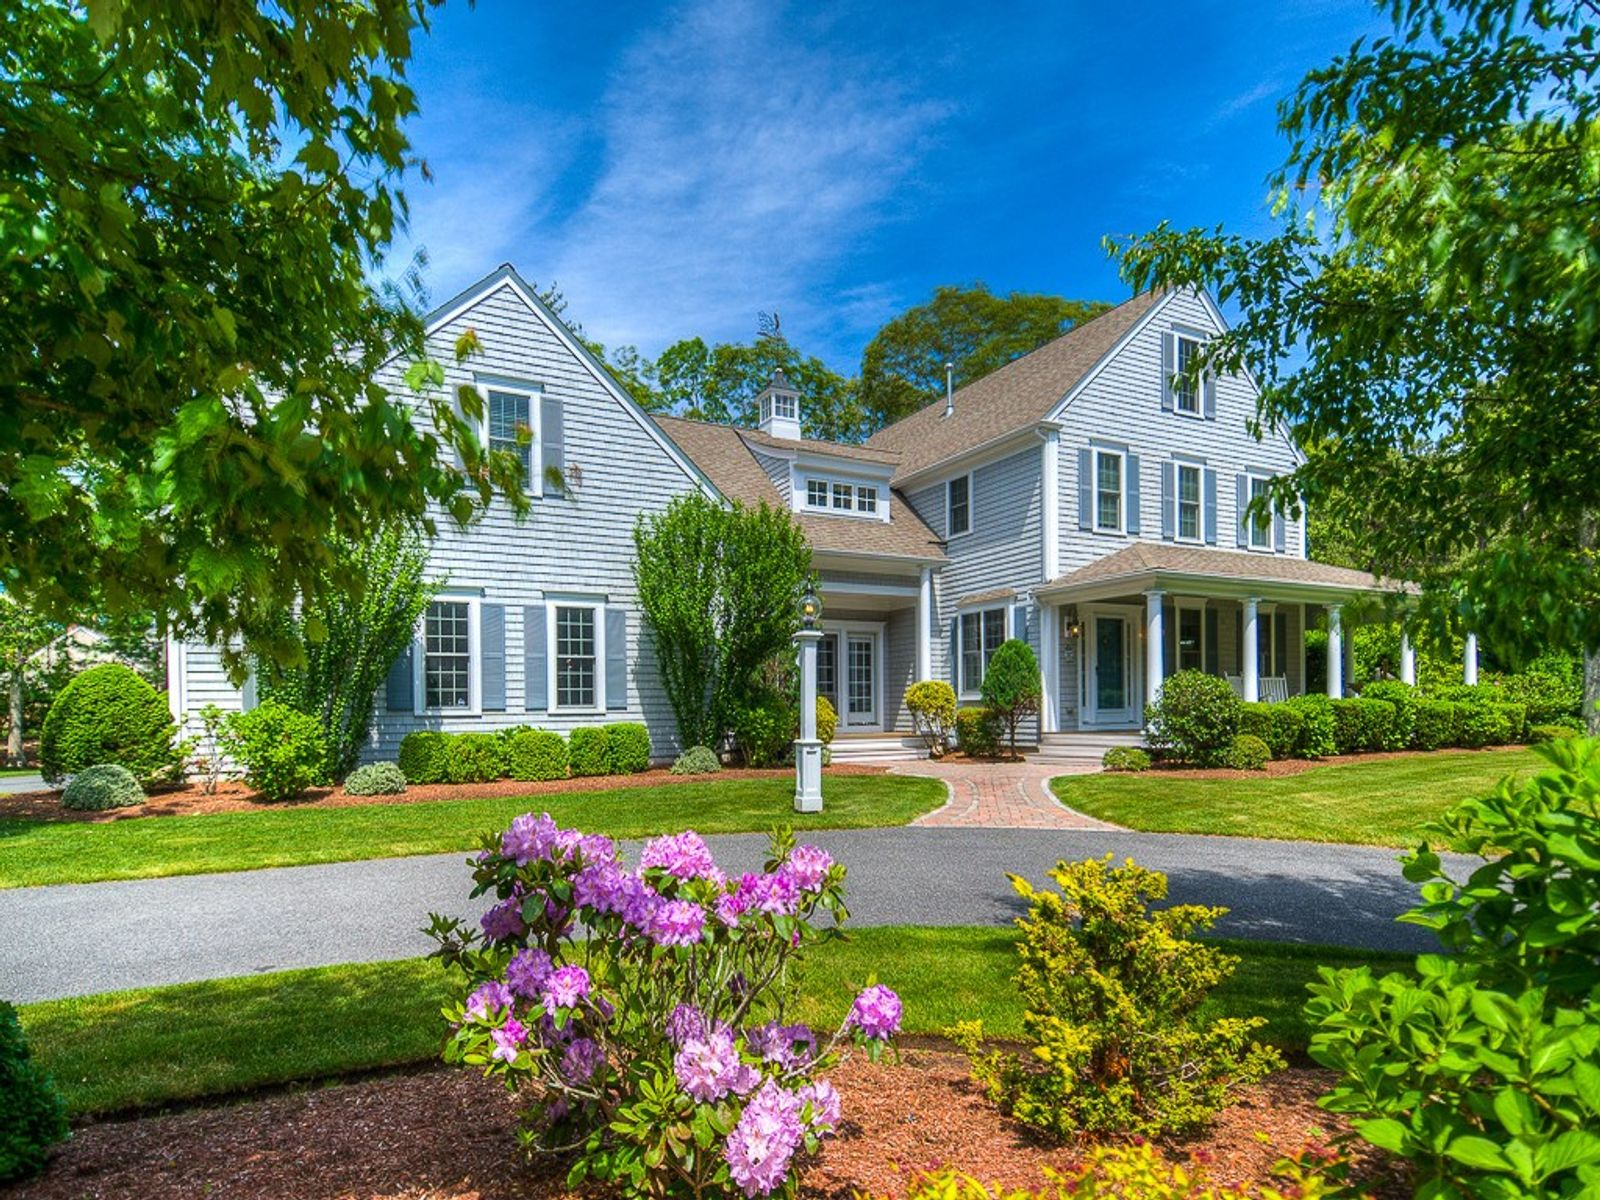 Wianno Lifestyle, Osterville MA Single Family Home - Cape Cod Real Estate